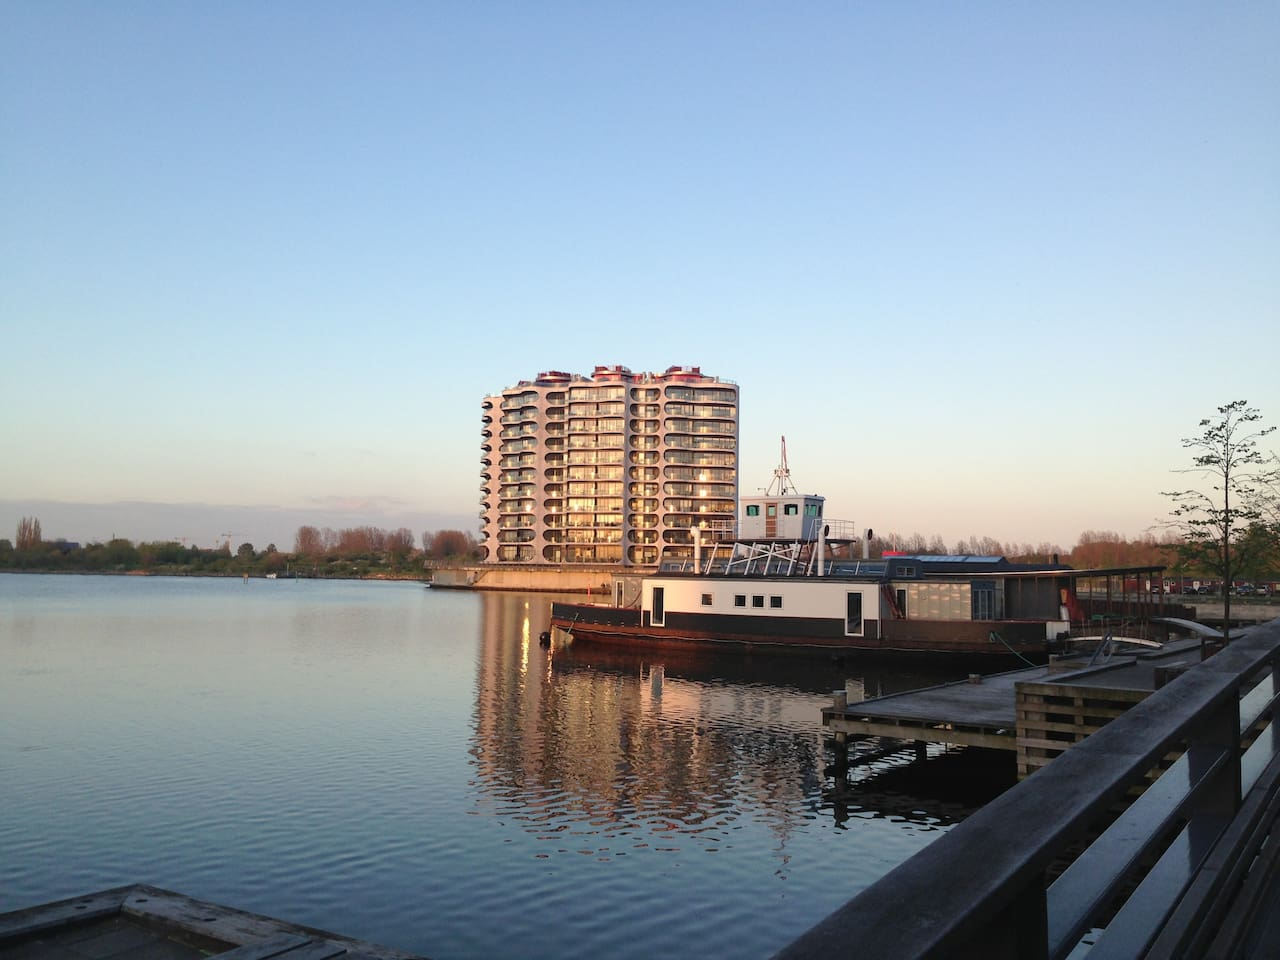 Our lovely building - sorrounded by water